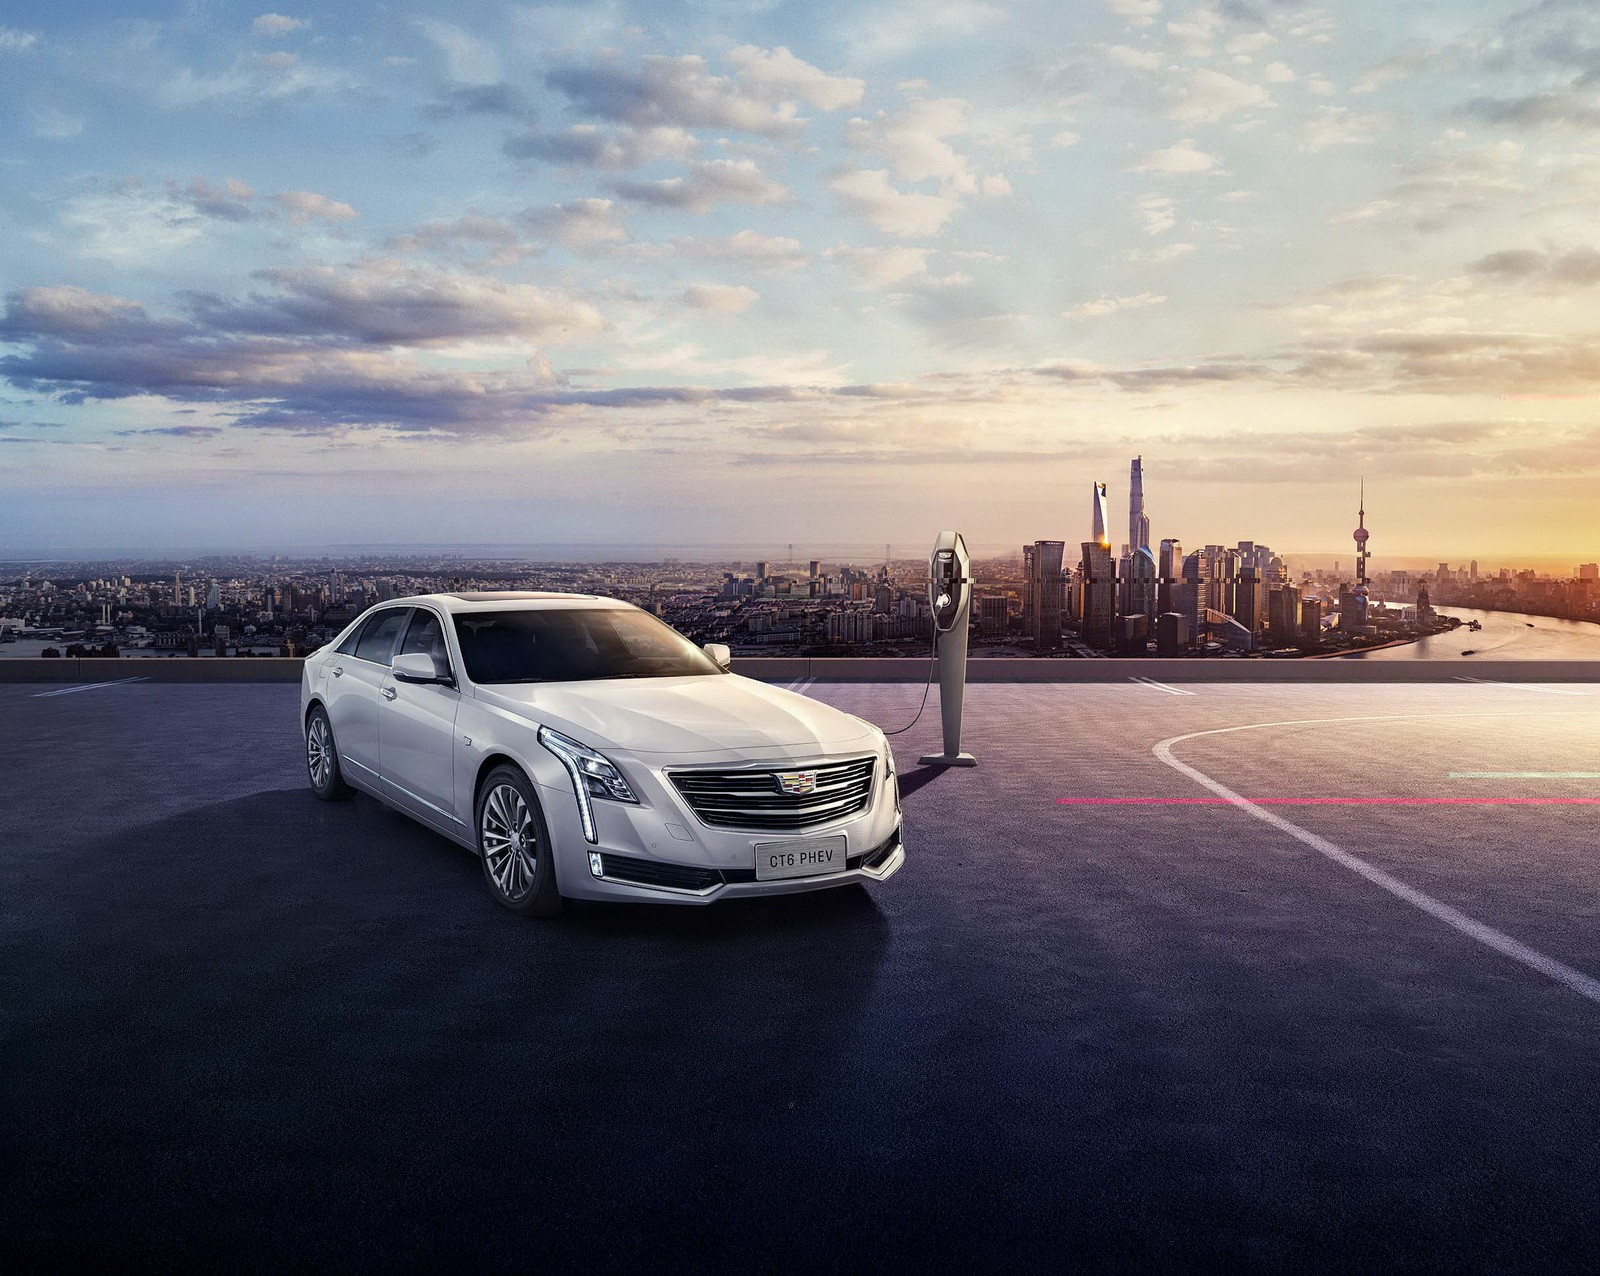 Новый cadillac ct6 plug-in hybrid 2018 - фото, характеристика, цена